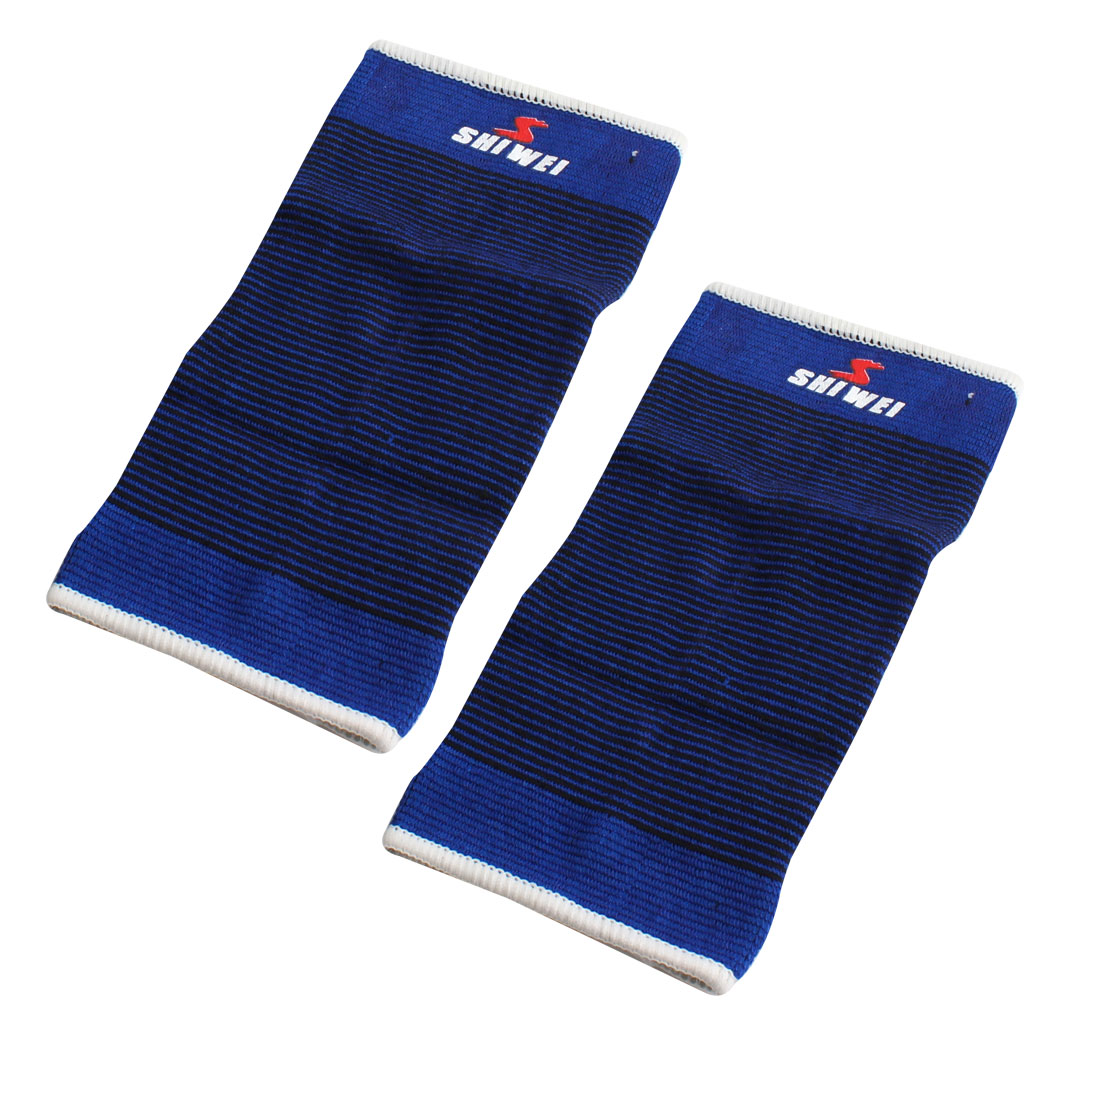 Pair Blue Black Pinstripe Elastic Shin Splint Calf Pullover Support Sleeve